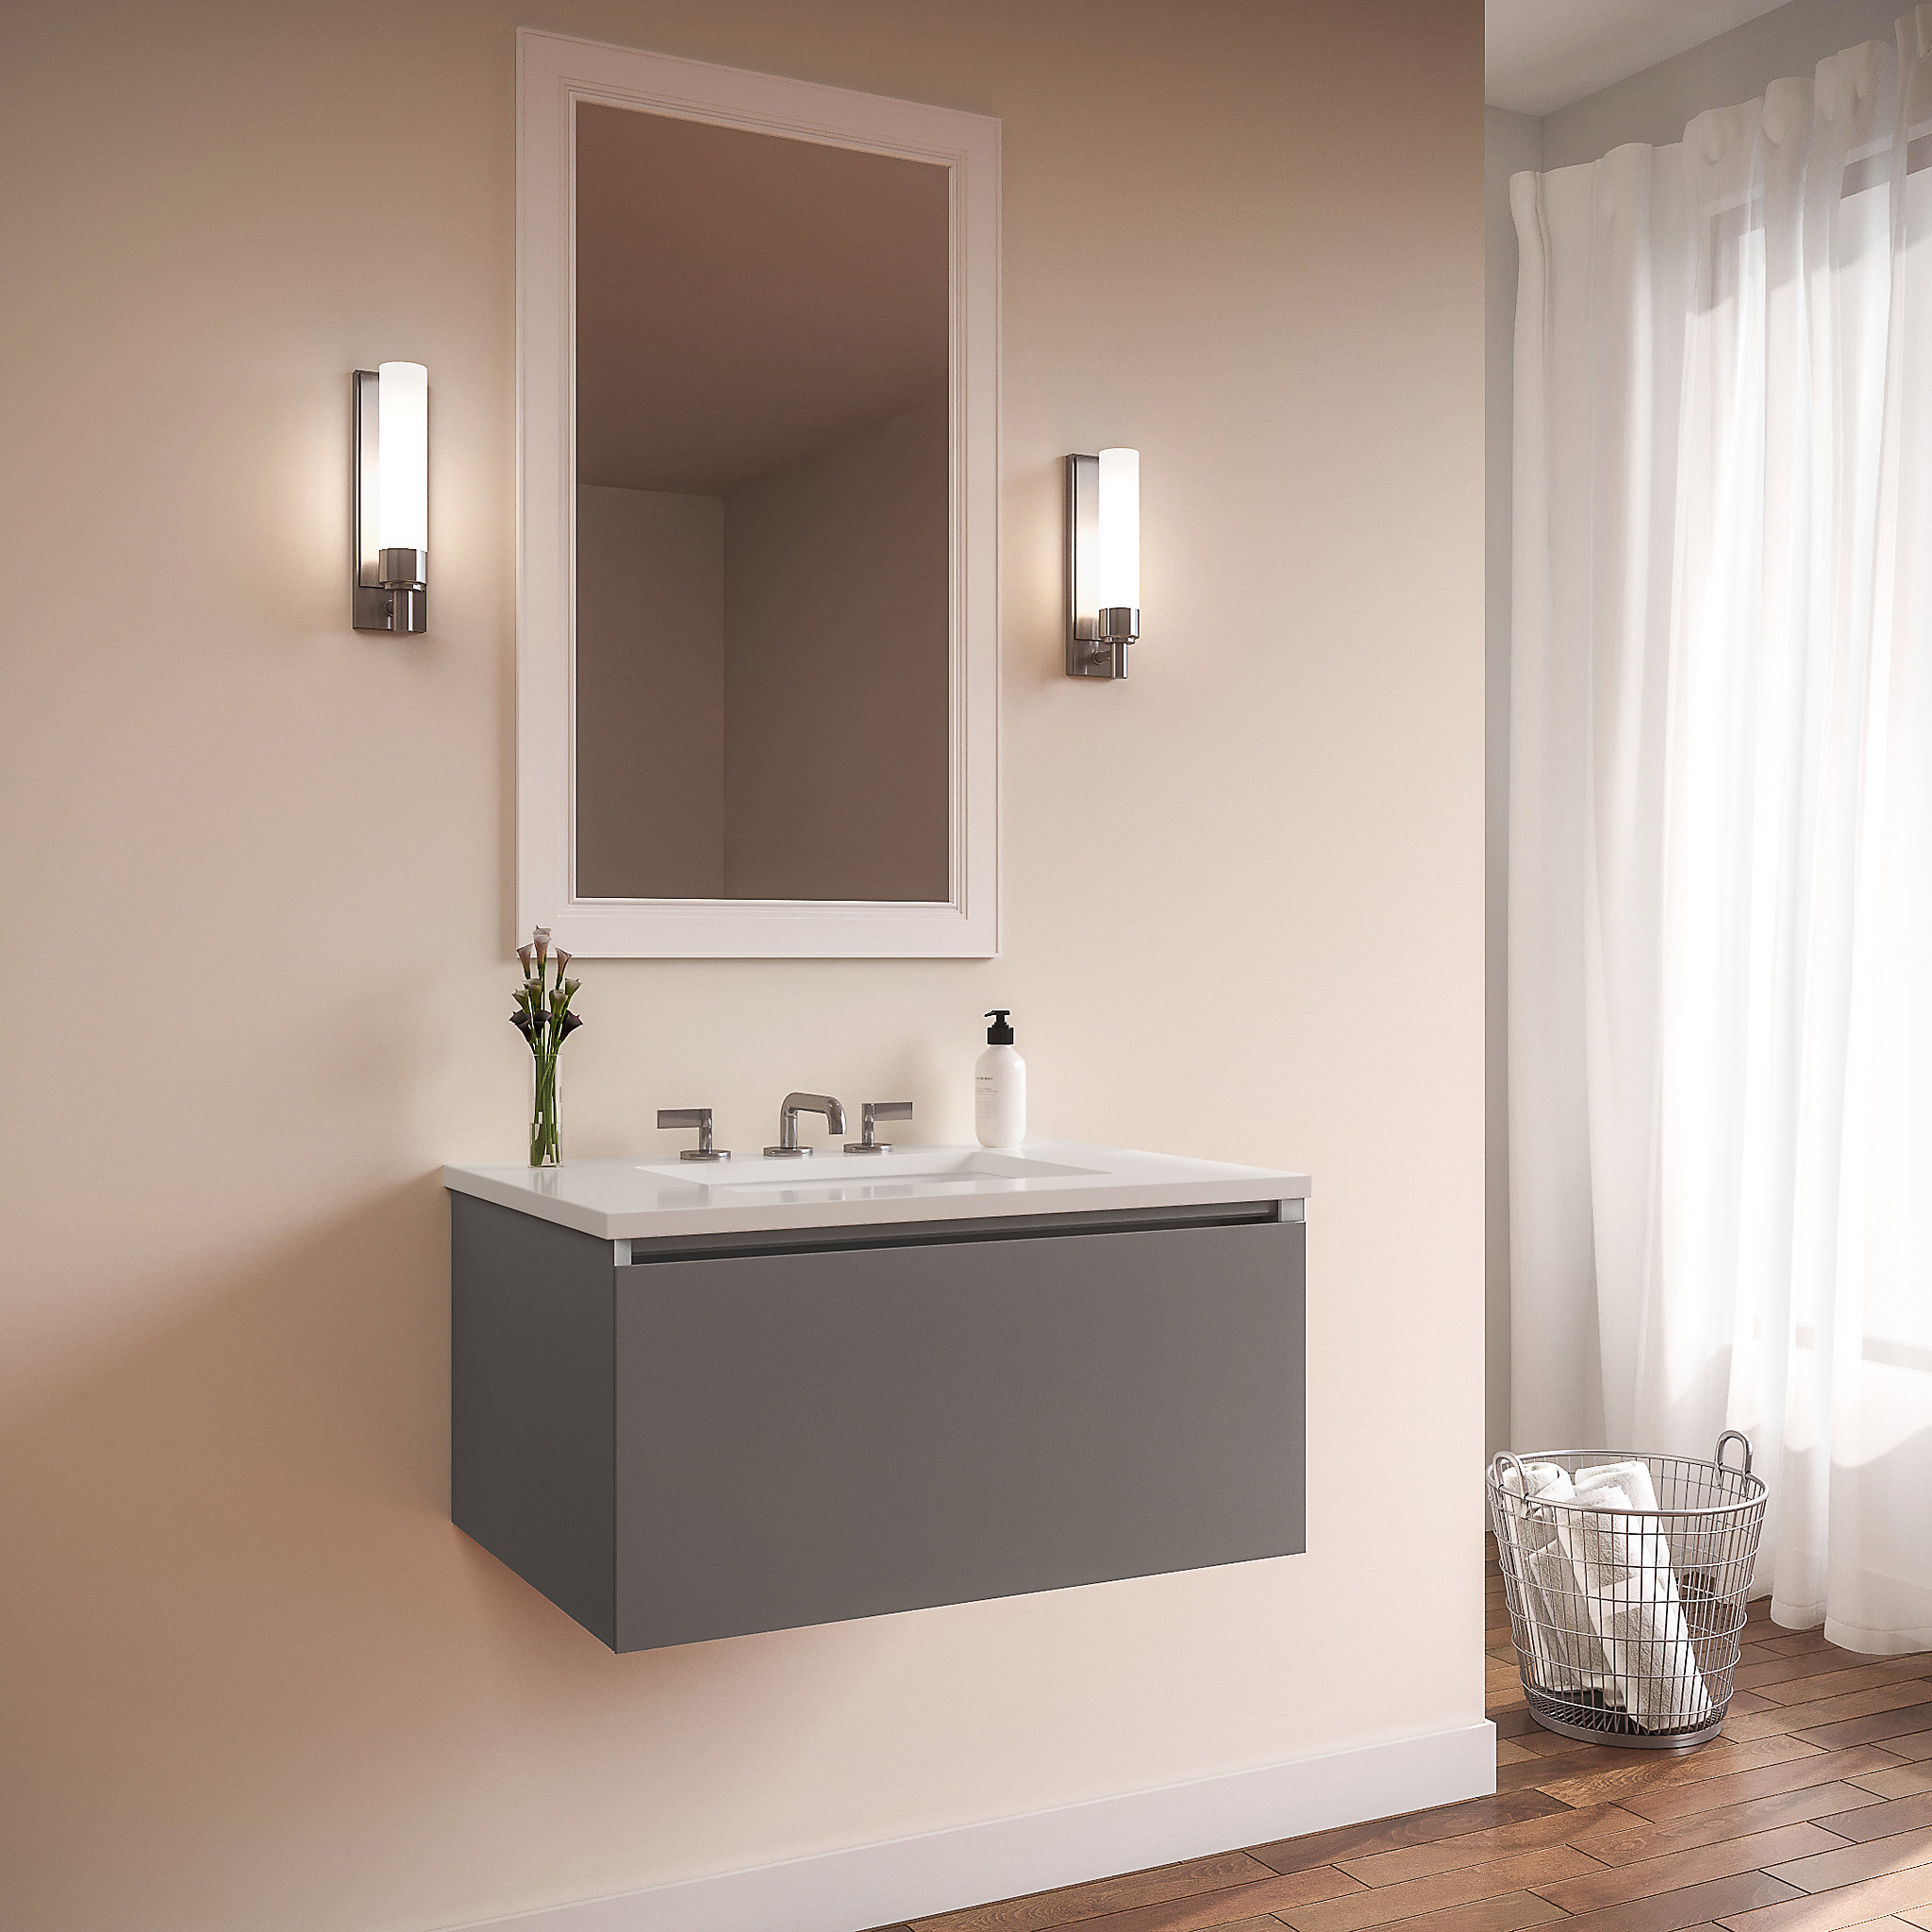 "Robern 24279200NB00001 Curated Cartesian Vanity, 24"" x 15"" x 21"", Single Drawer, Matte Gray Glass, Plumbing Drawer, Engineered S"